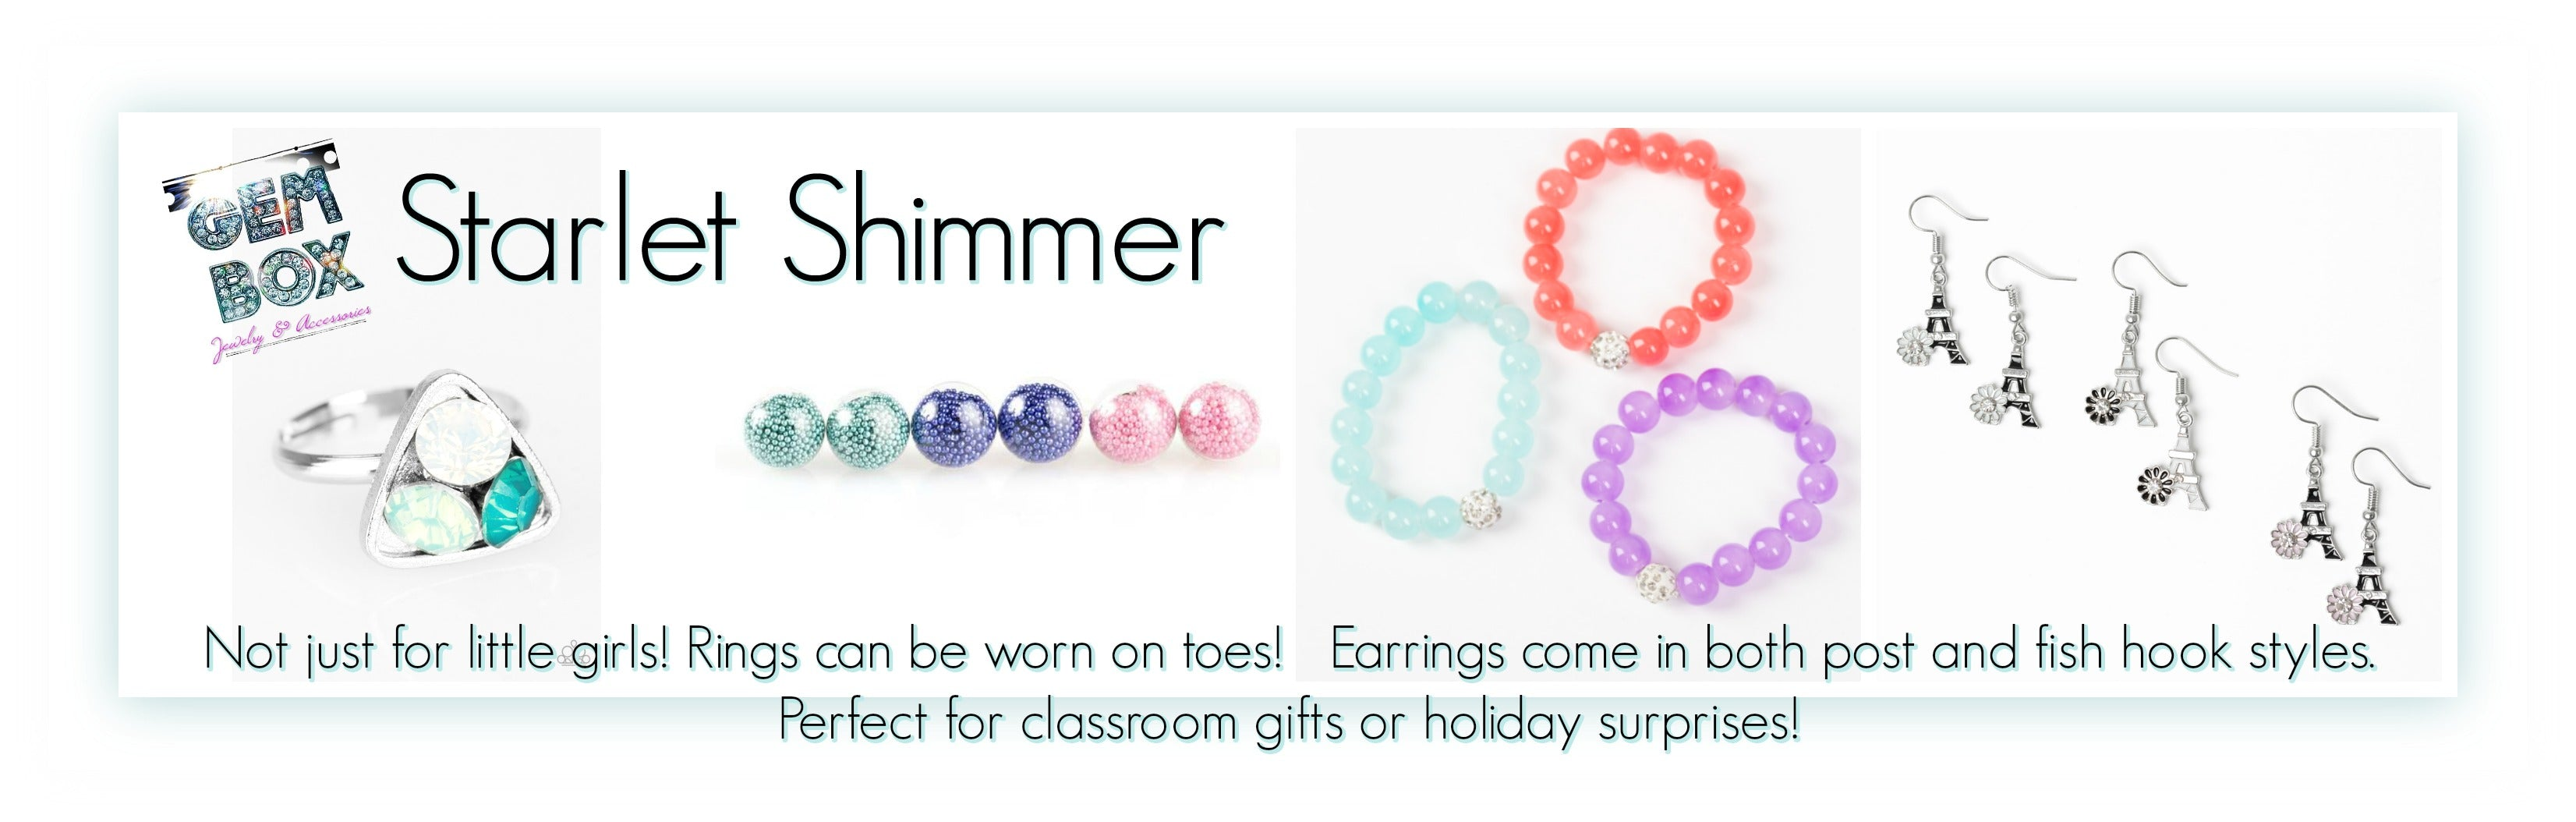 Paparazzi Jewelry | Starlet Shimmer Youth, Kid's, & Little Girl's Items | Gem Box Accessories